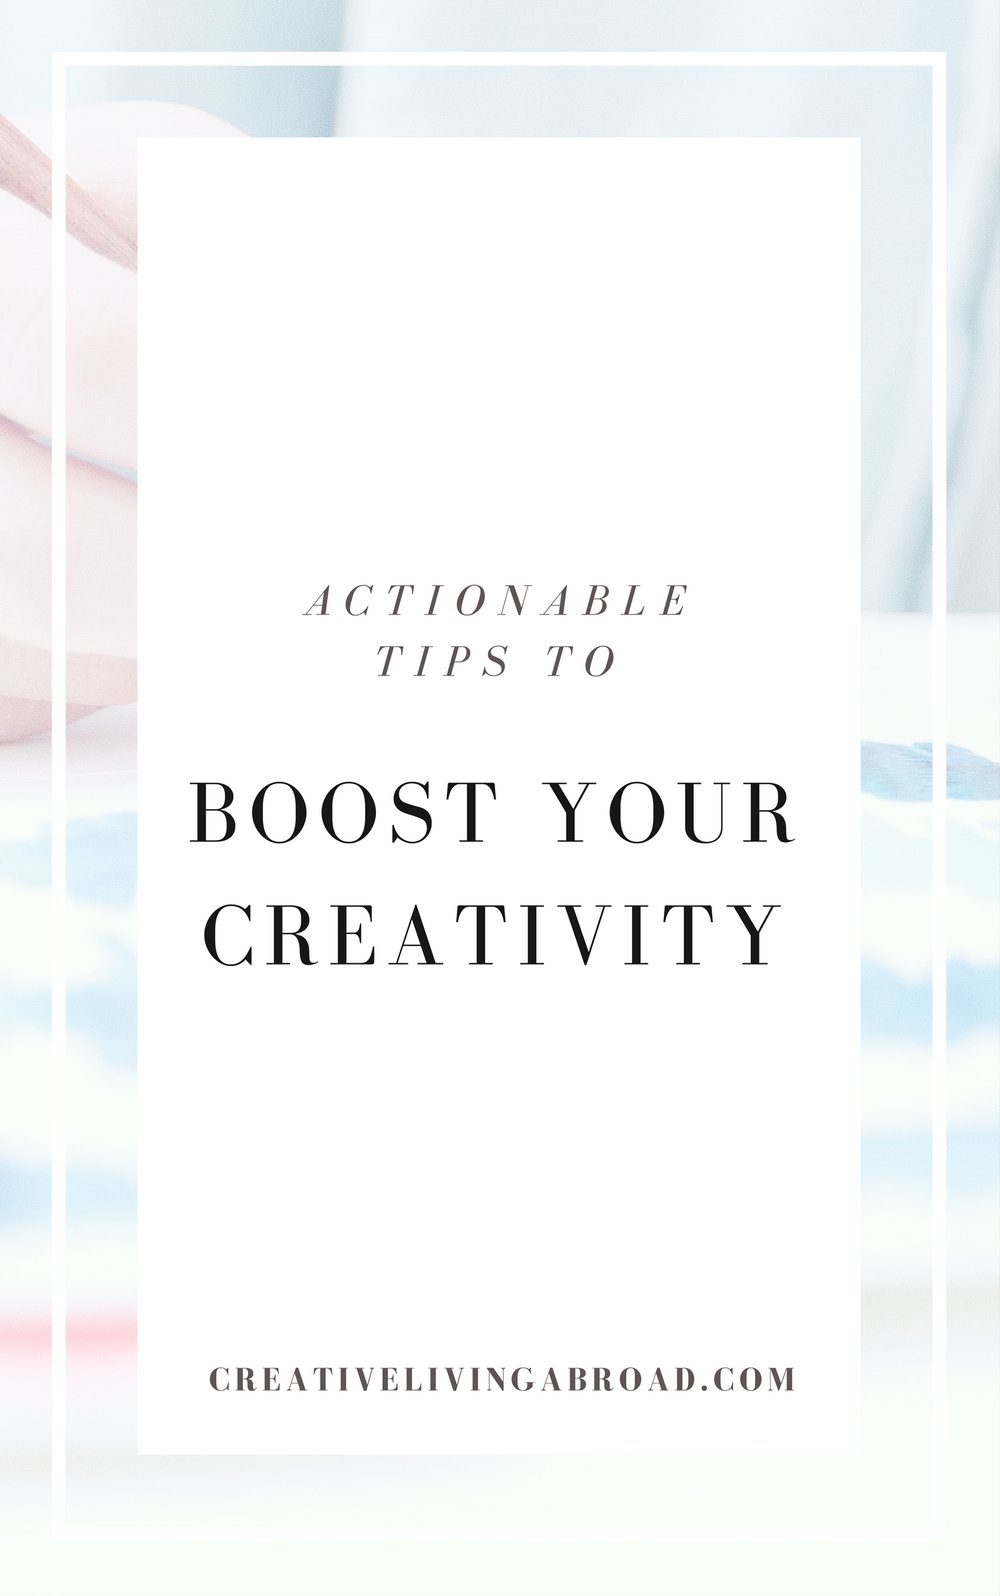 actionable tips to boost your creativity